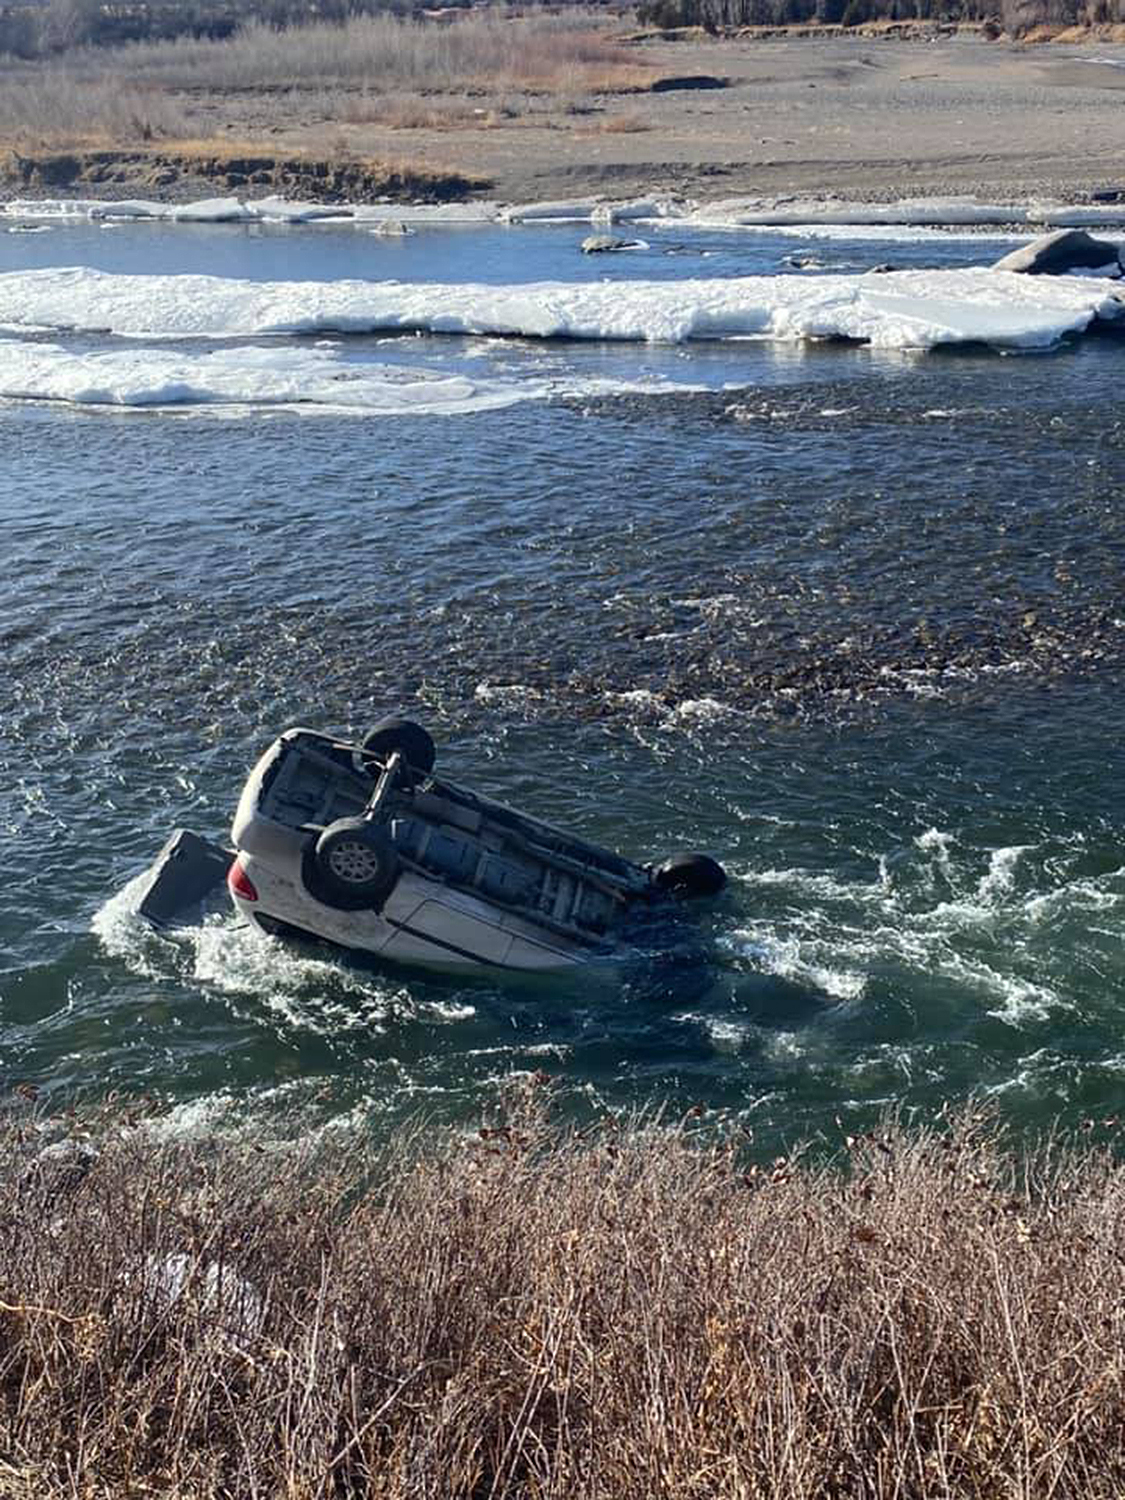 Montana Woman Rescued After Her Car Is Found Upside-Down in Yellowstone River